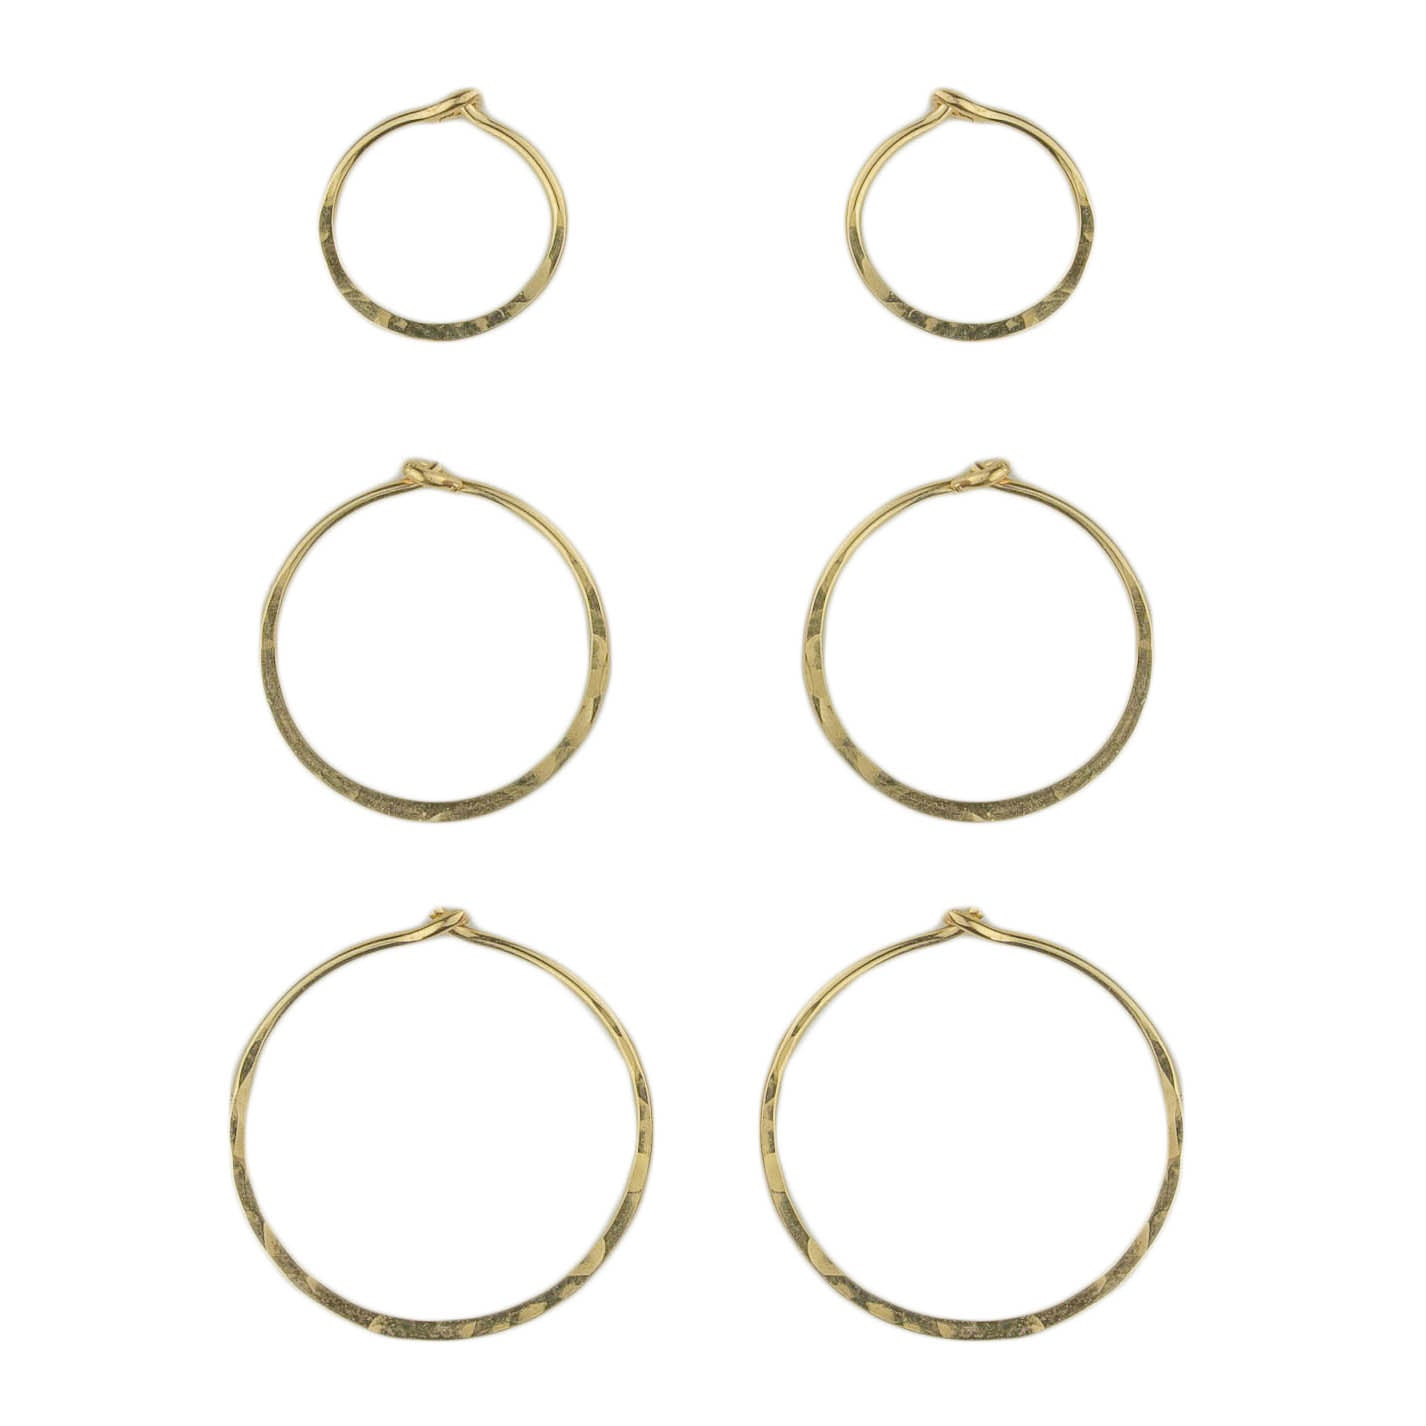 Tiny Gold Hoops - 3 Pack